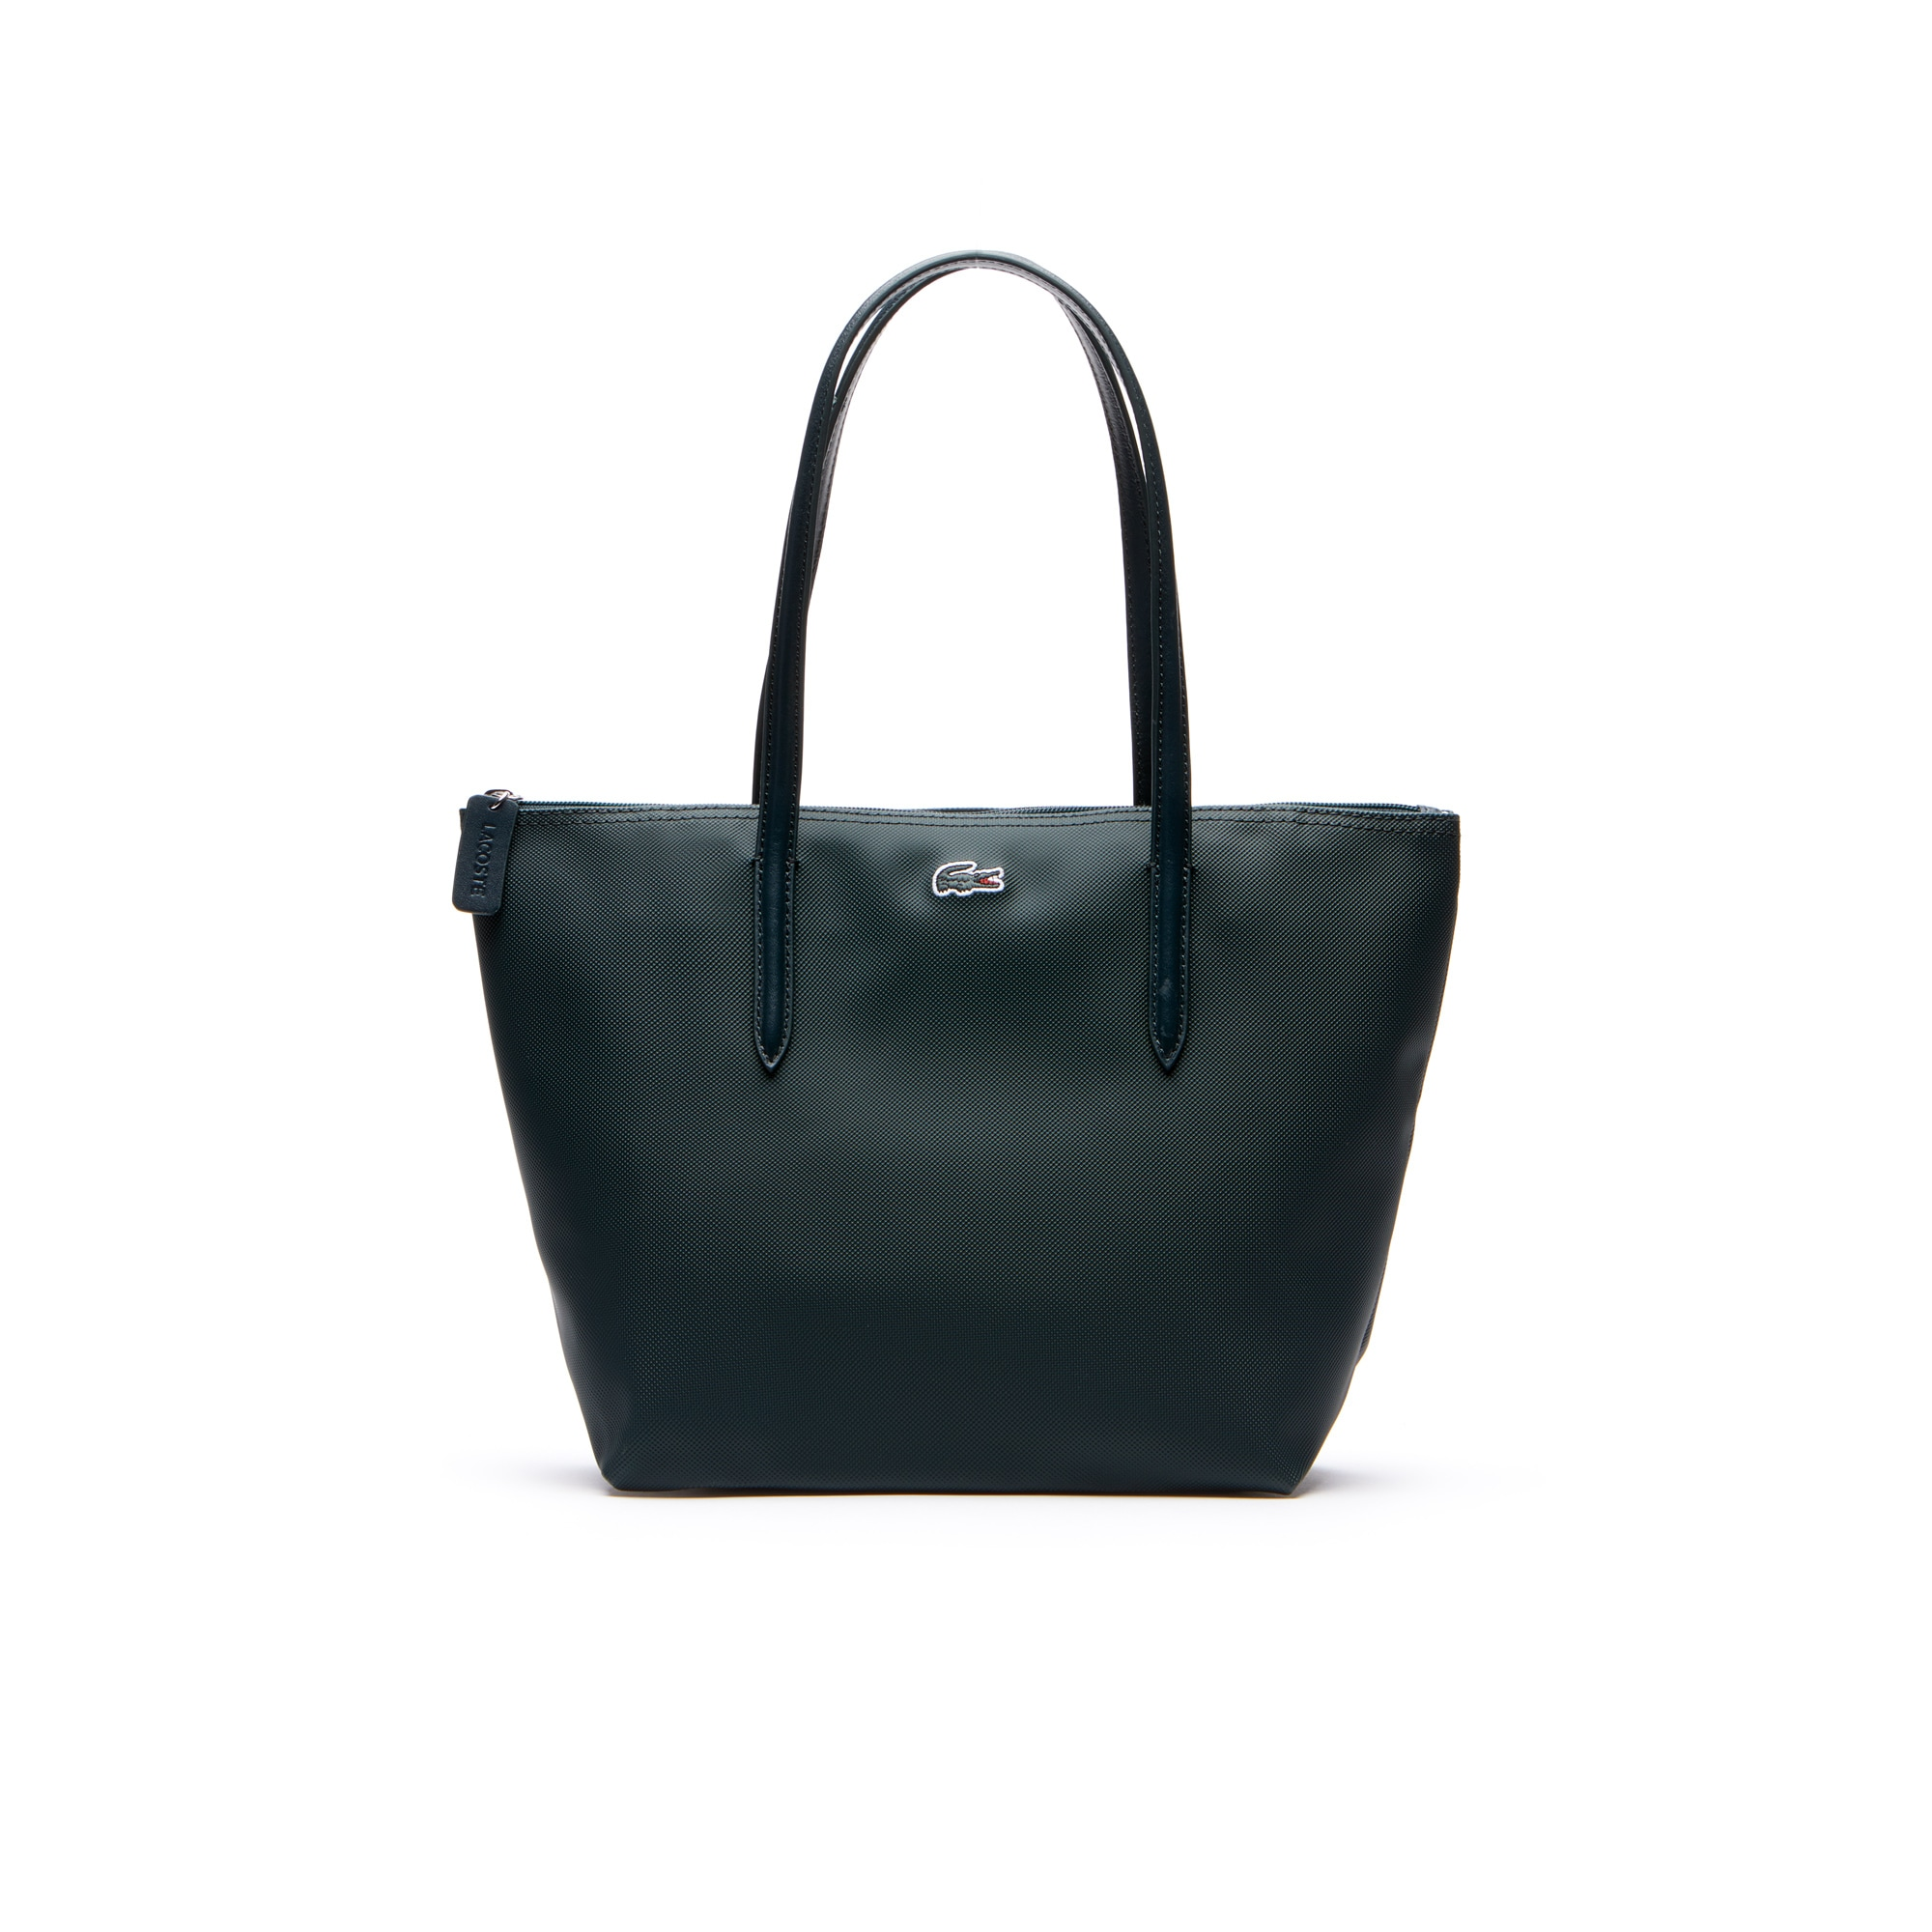 ... Women's L.12.12 Concept Small Zip Tote Bag